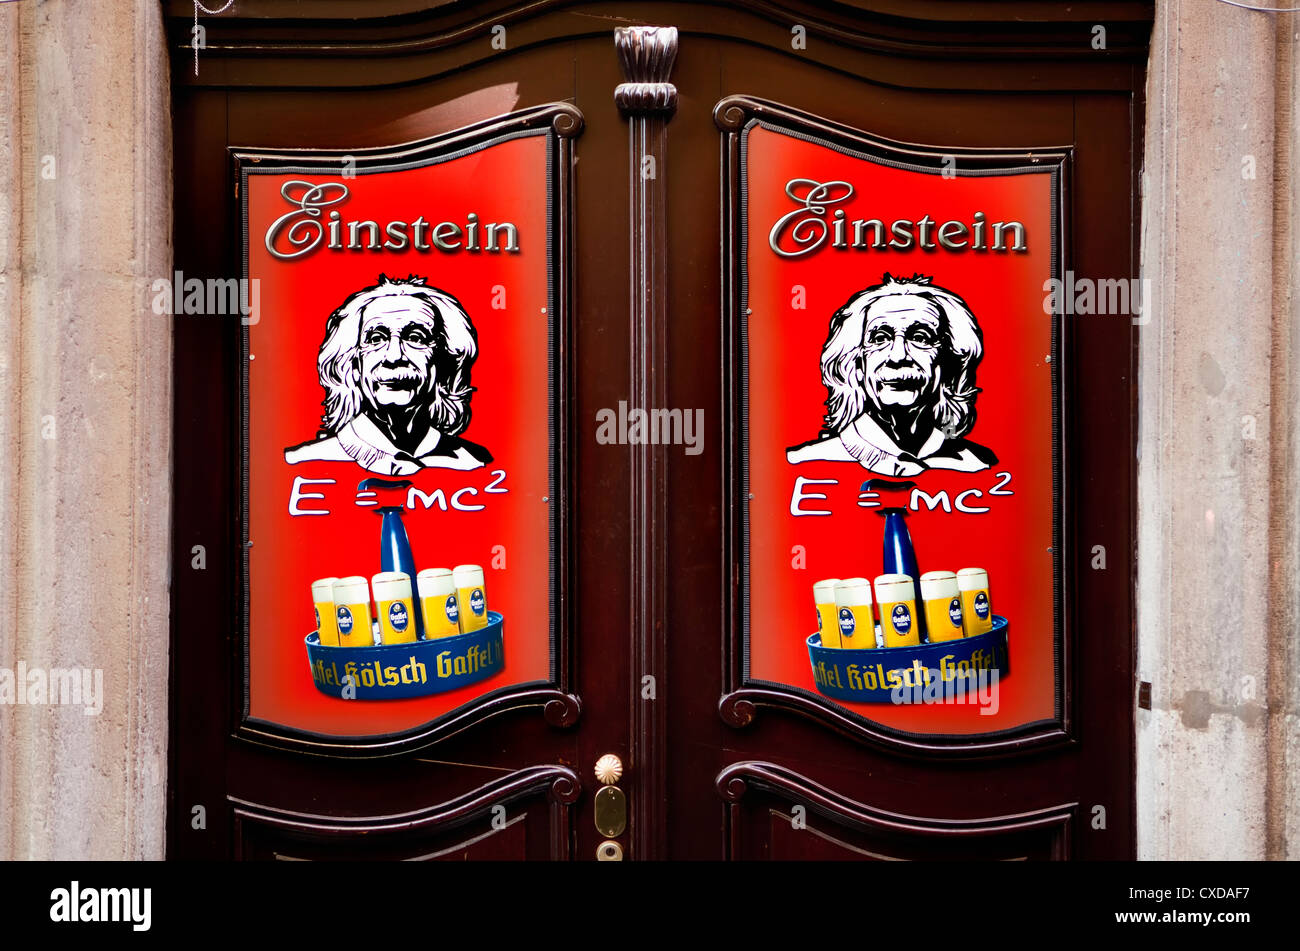 Entrance of a Old city taverne, Gaffel Koelsch beer, with a picture of Albert Einstein, E=mc², Cologne, Germany, - Stock Image